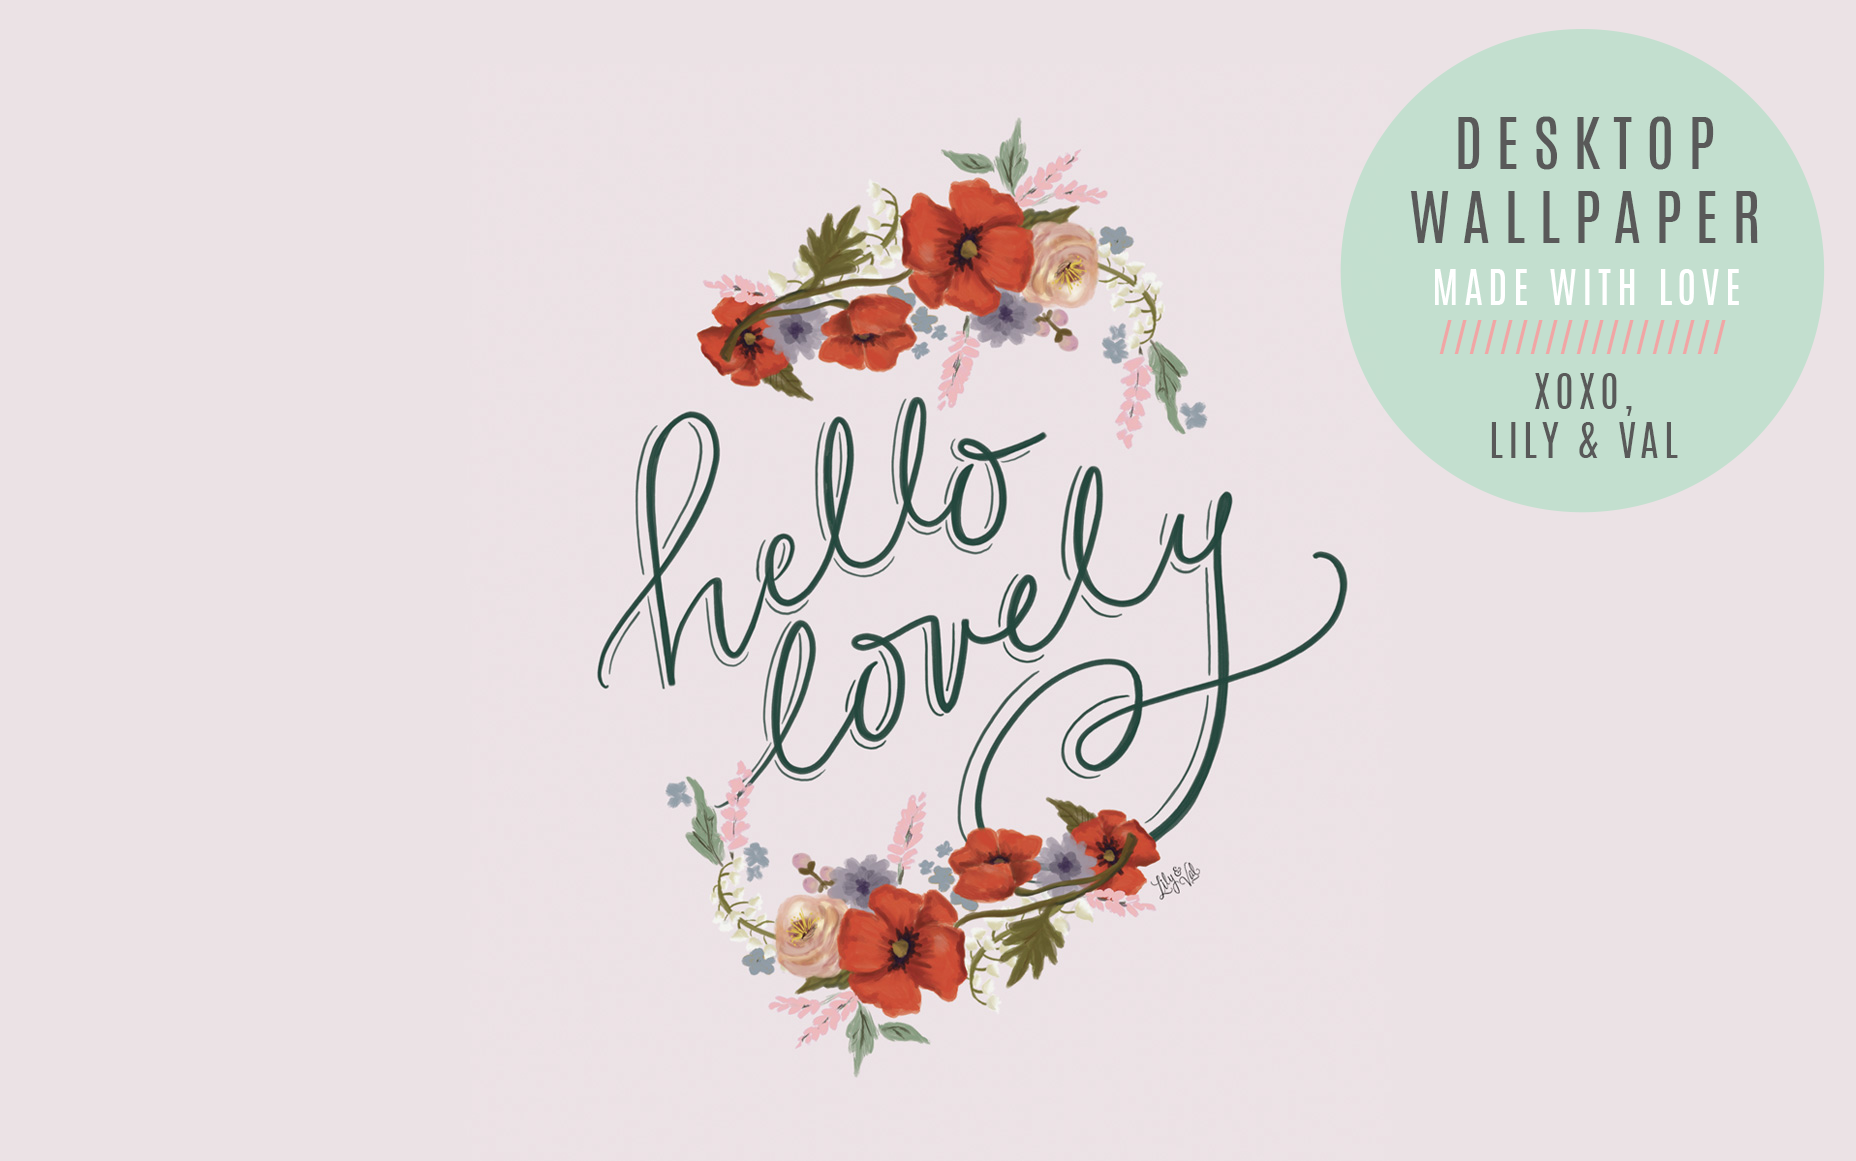 Free Pretty desktop wallpaper for Valentine's Day